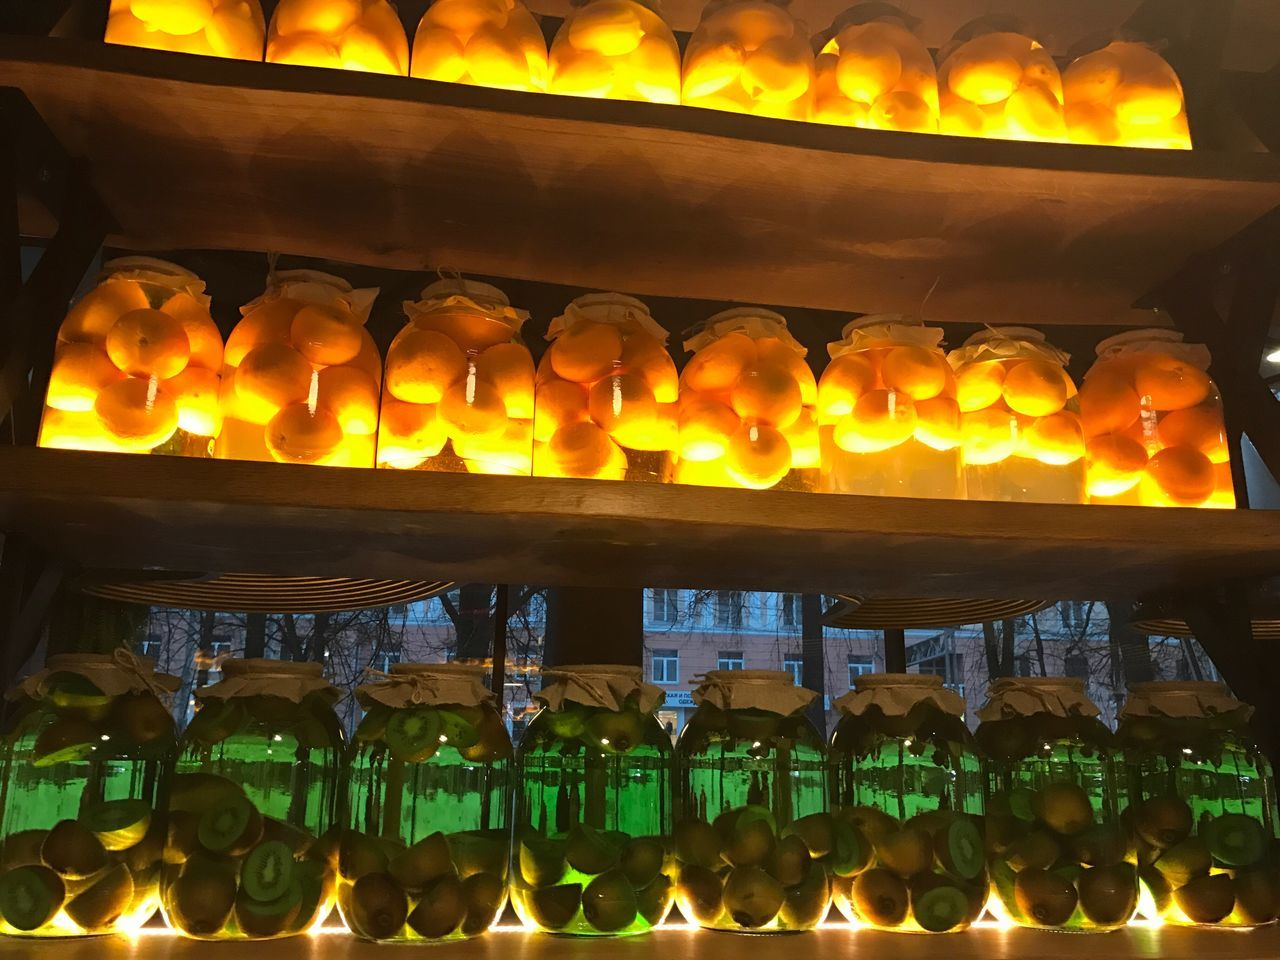 illuminated, in a row, indoors, burning, flame, glowing, night, large group of objects, no people, food and drink, heat - temperature, shelf, food, close-up